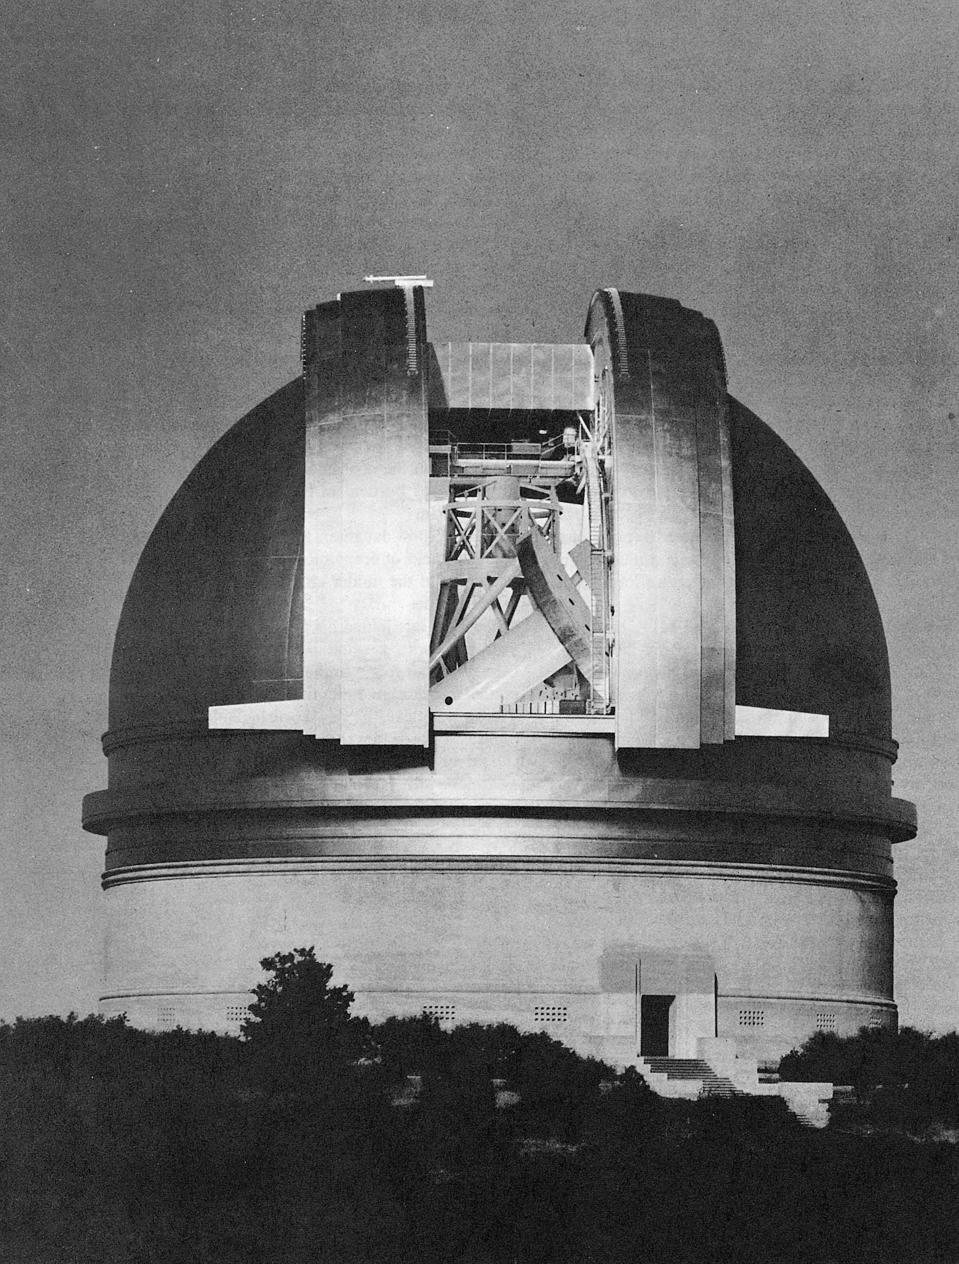 200 inch Hale telescope at Palomar Observatory shown at night